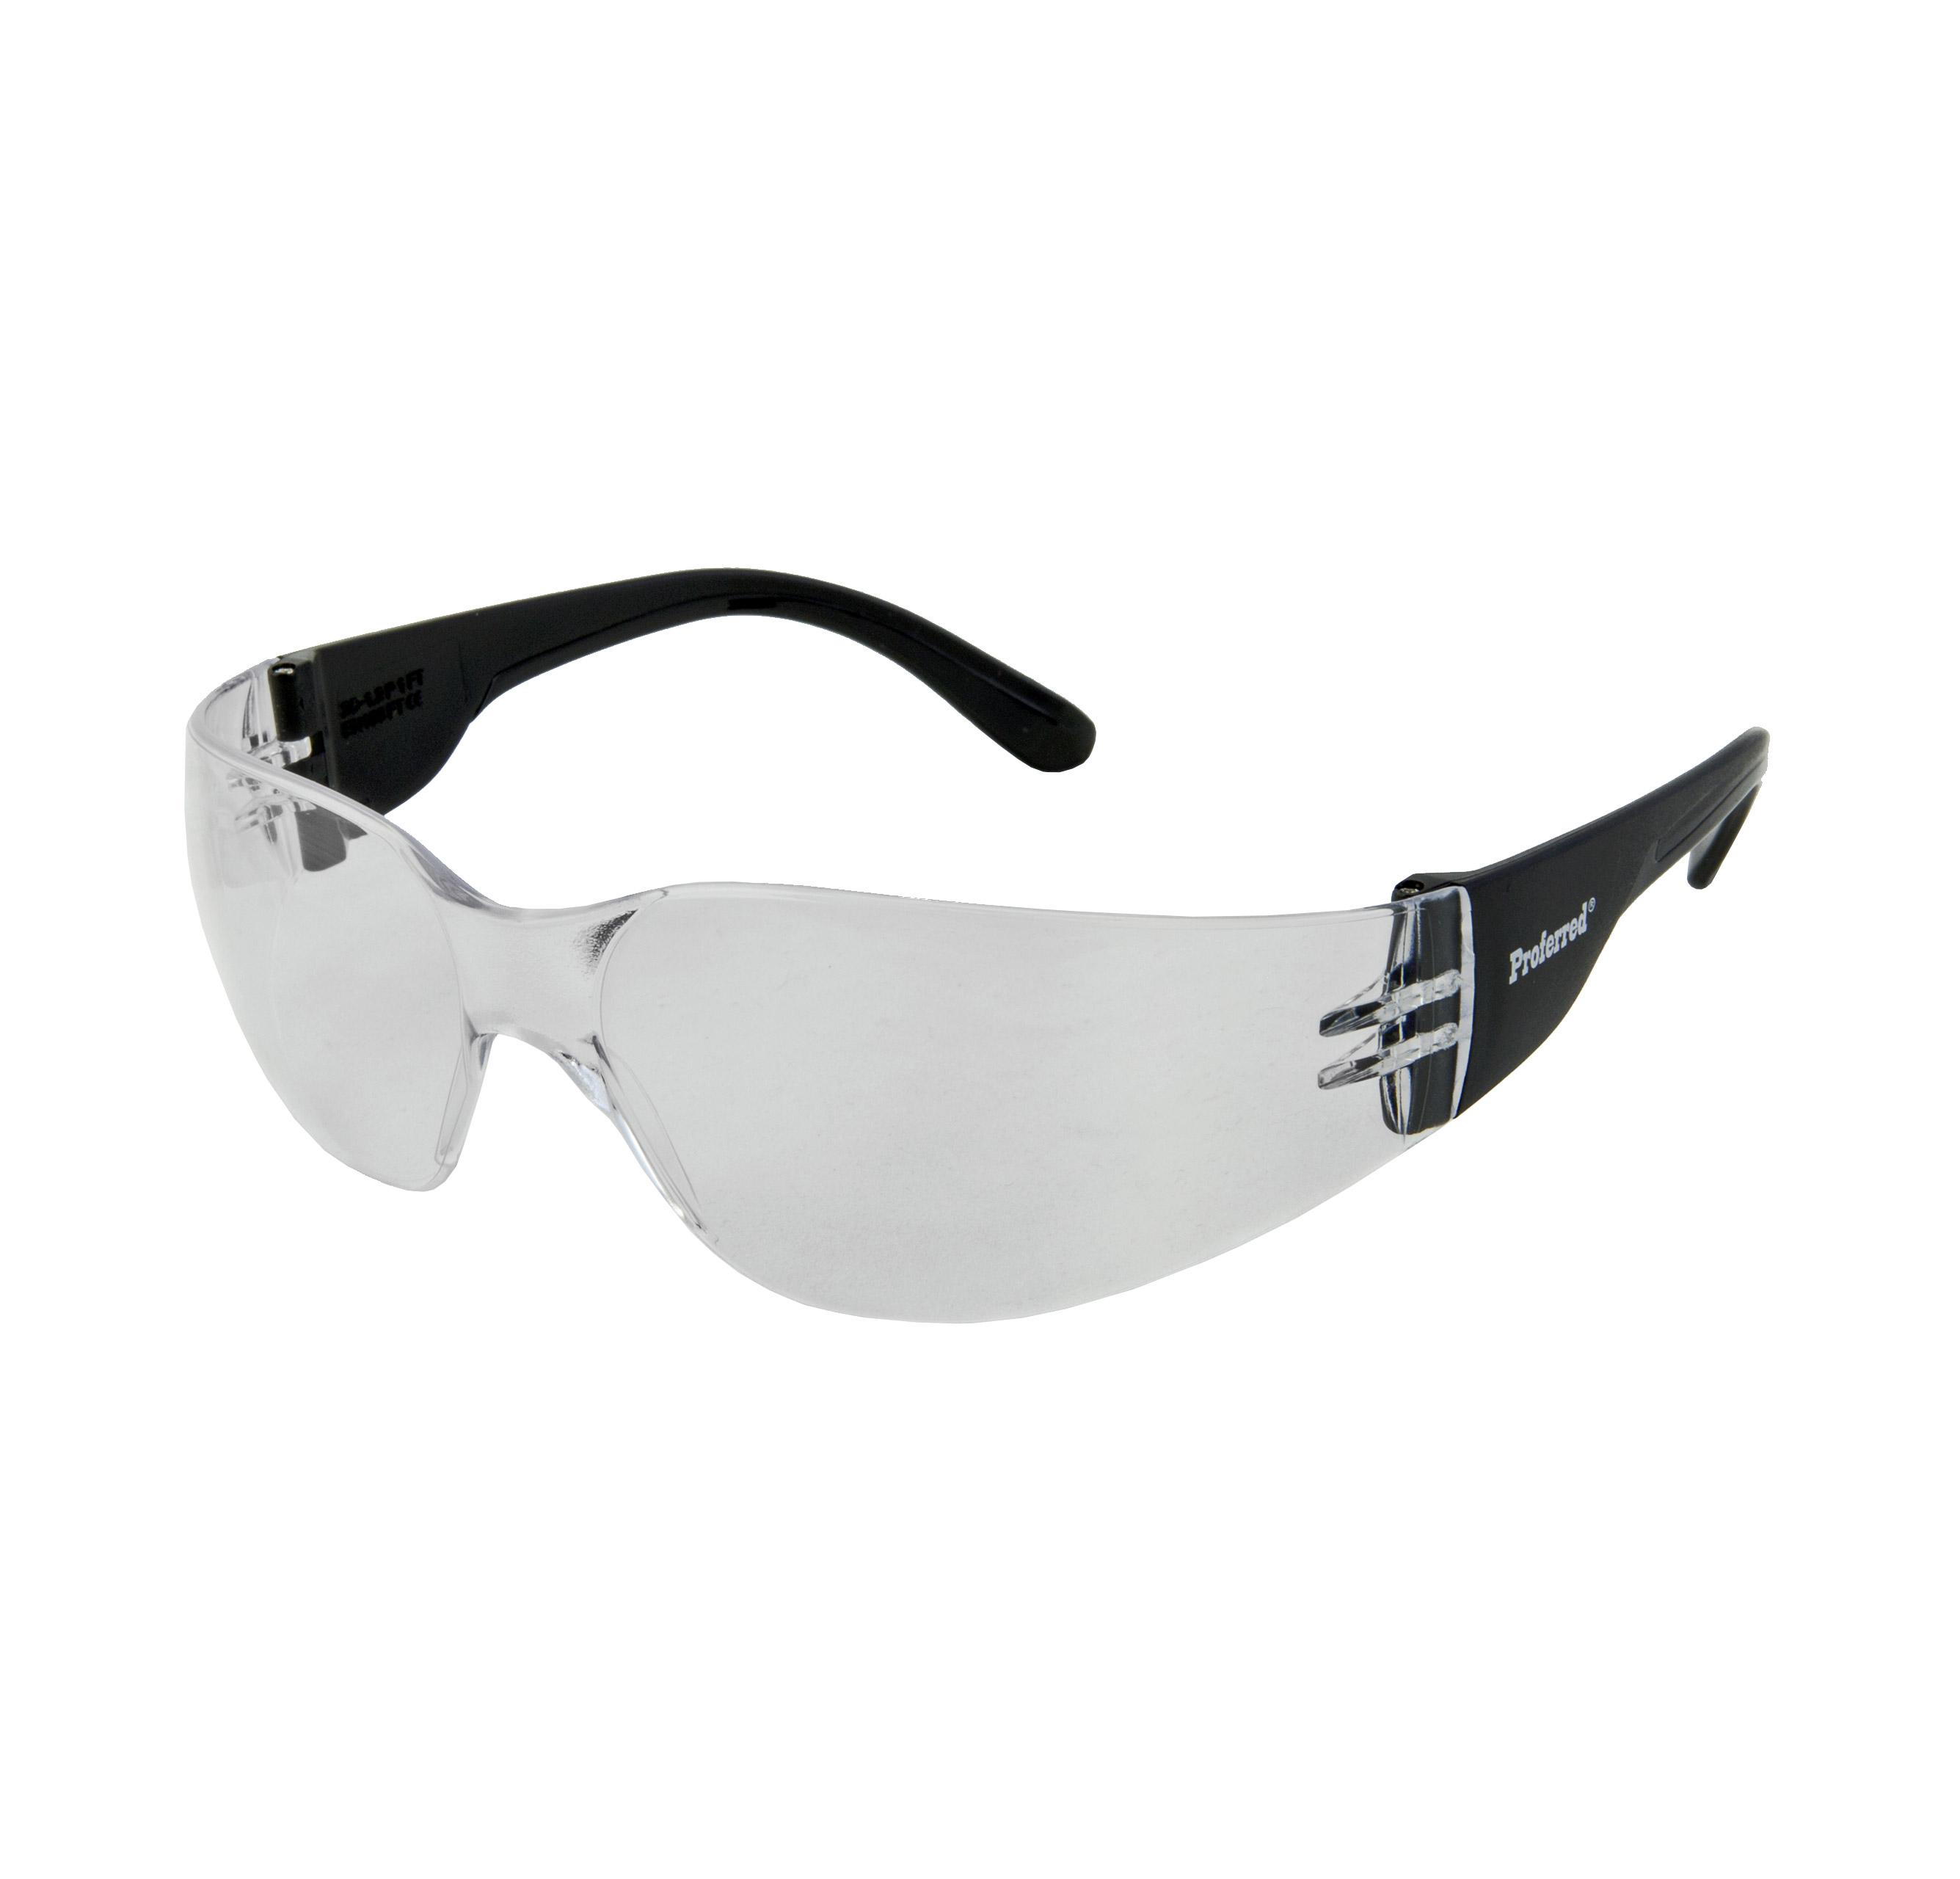 1b6c43f81e proferred 220 silver mirror lens as safety glasses ansi z87.1 compliant